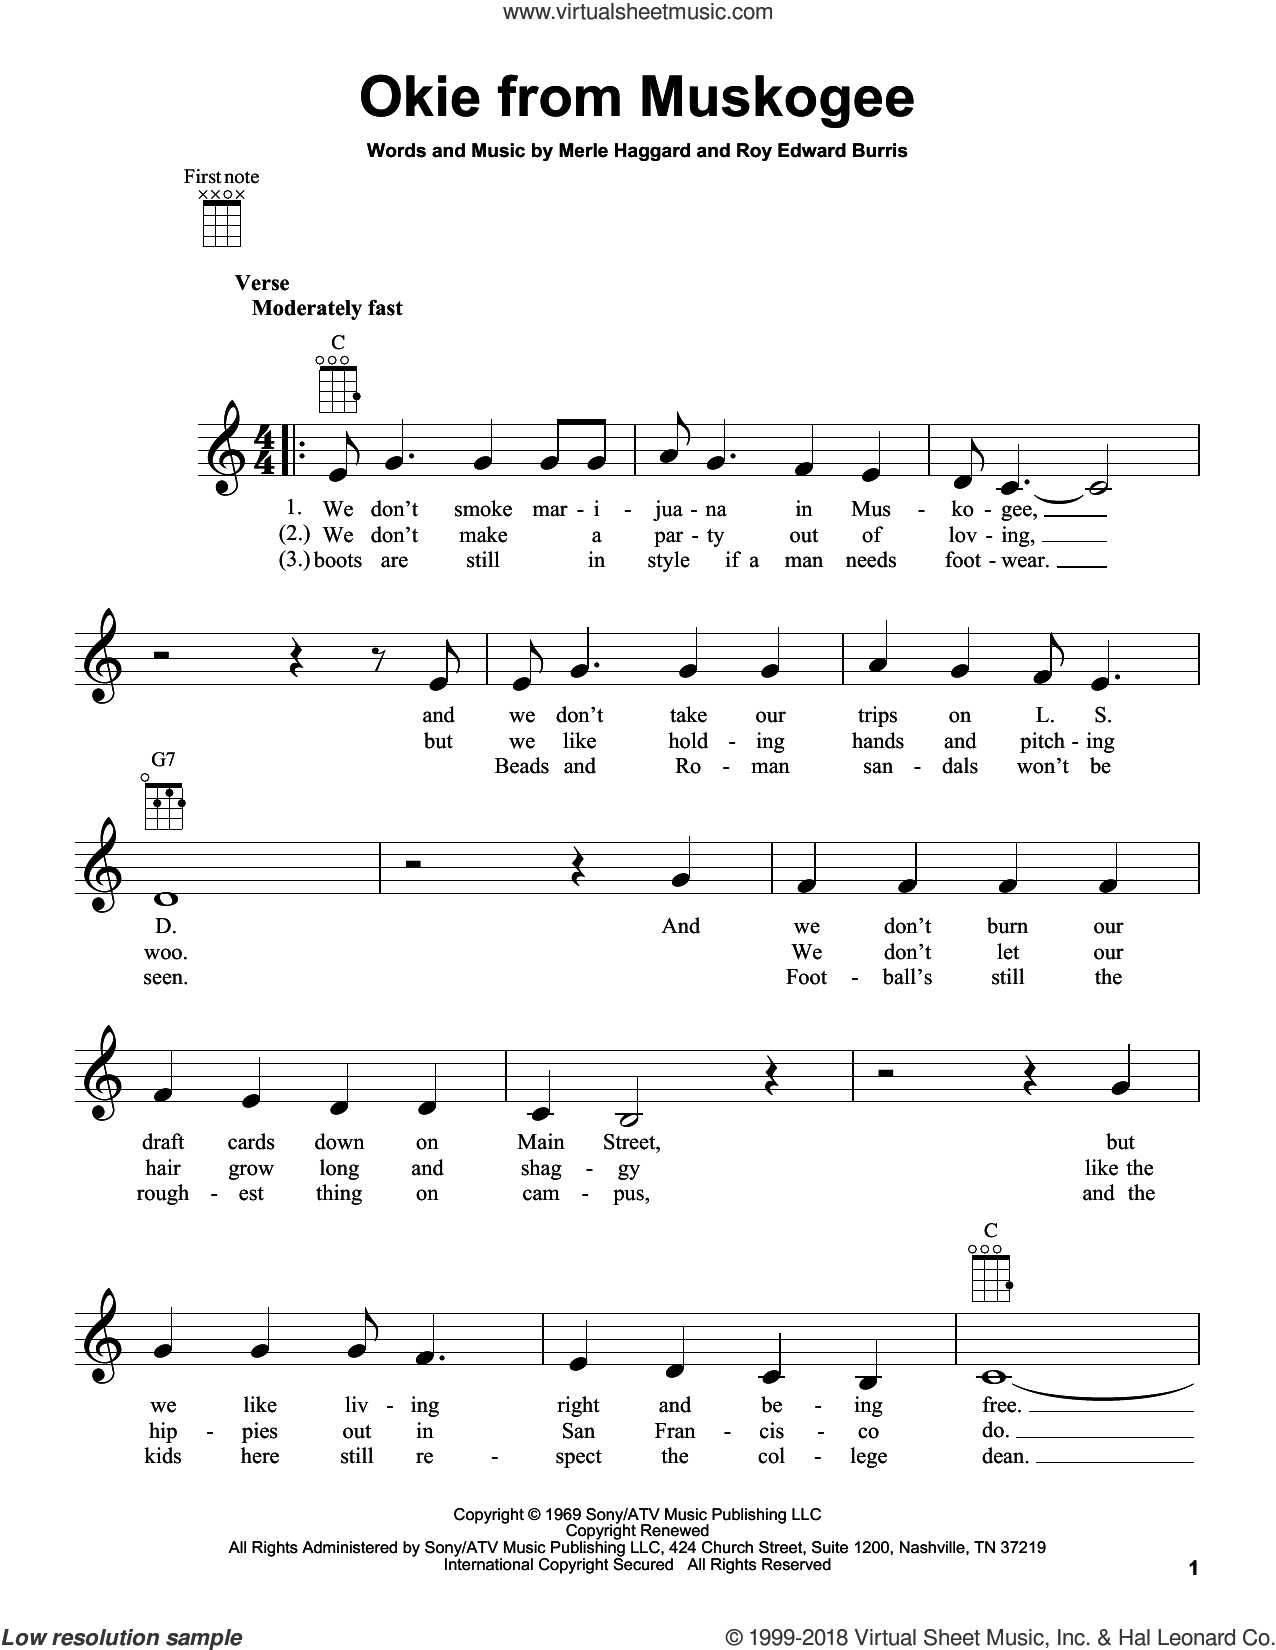 Okie From Muskogee sheet music for ukulele by Merle Haggard and Roy Edward Burris, intermediate